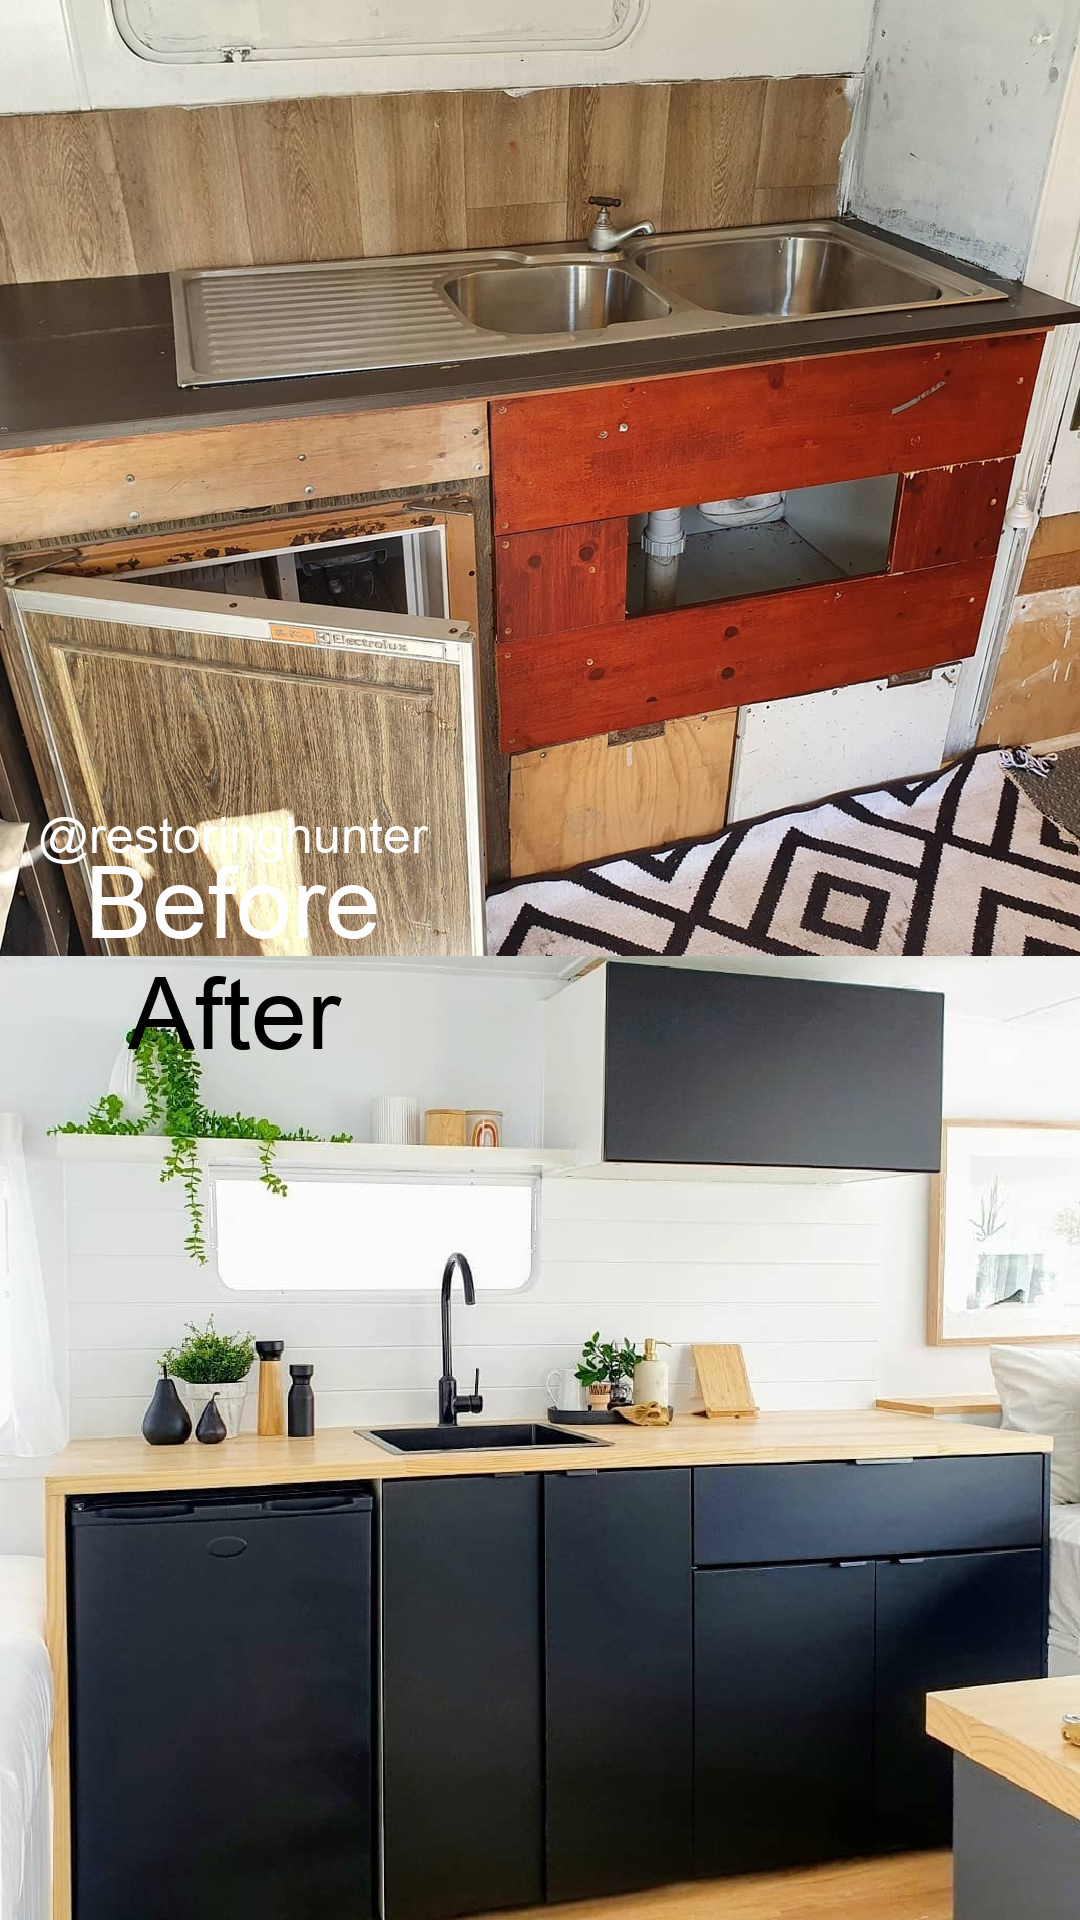 Before and after photos of the interior of a renovated vintage travel trailer.